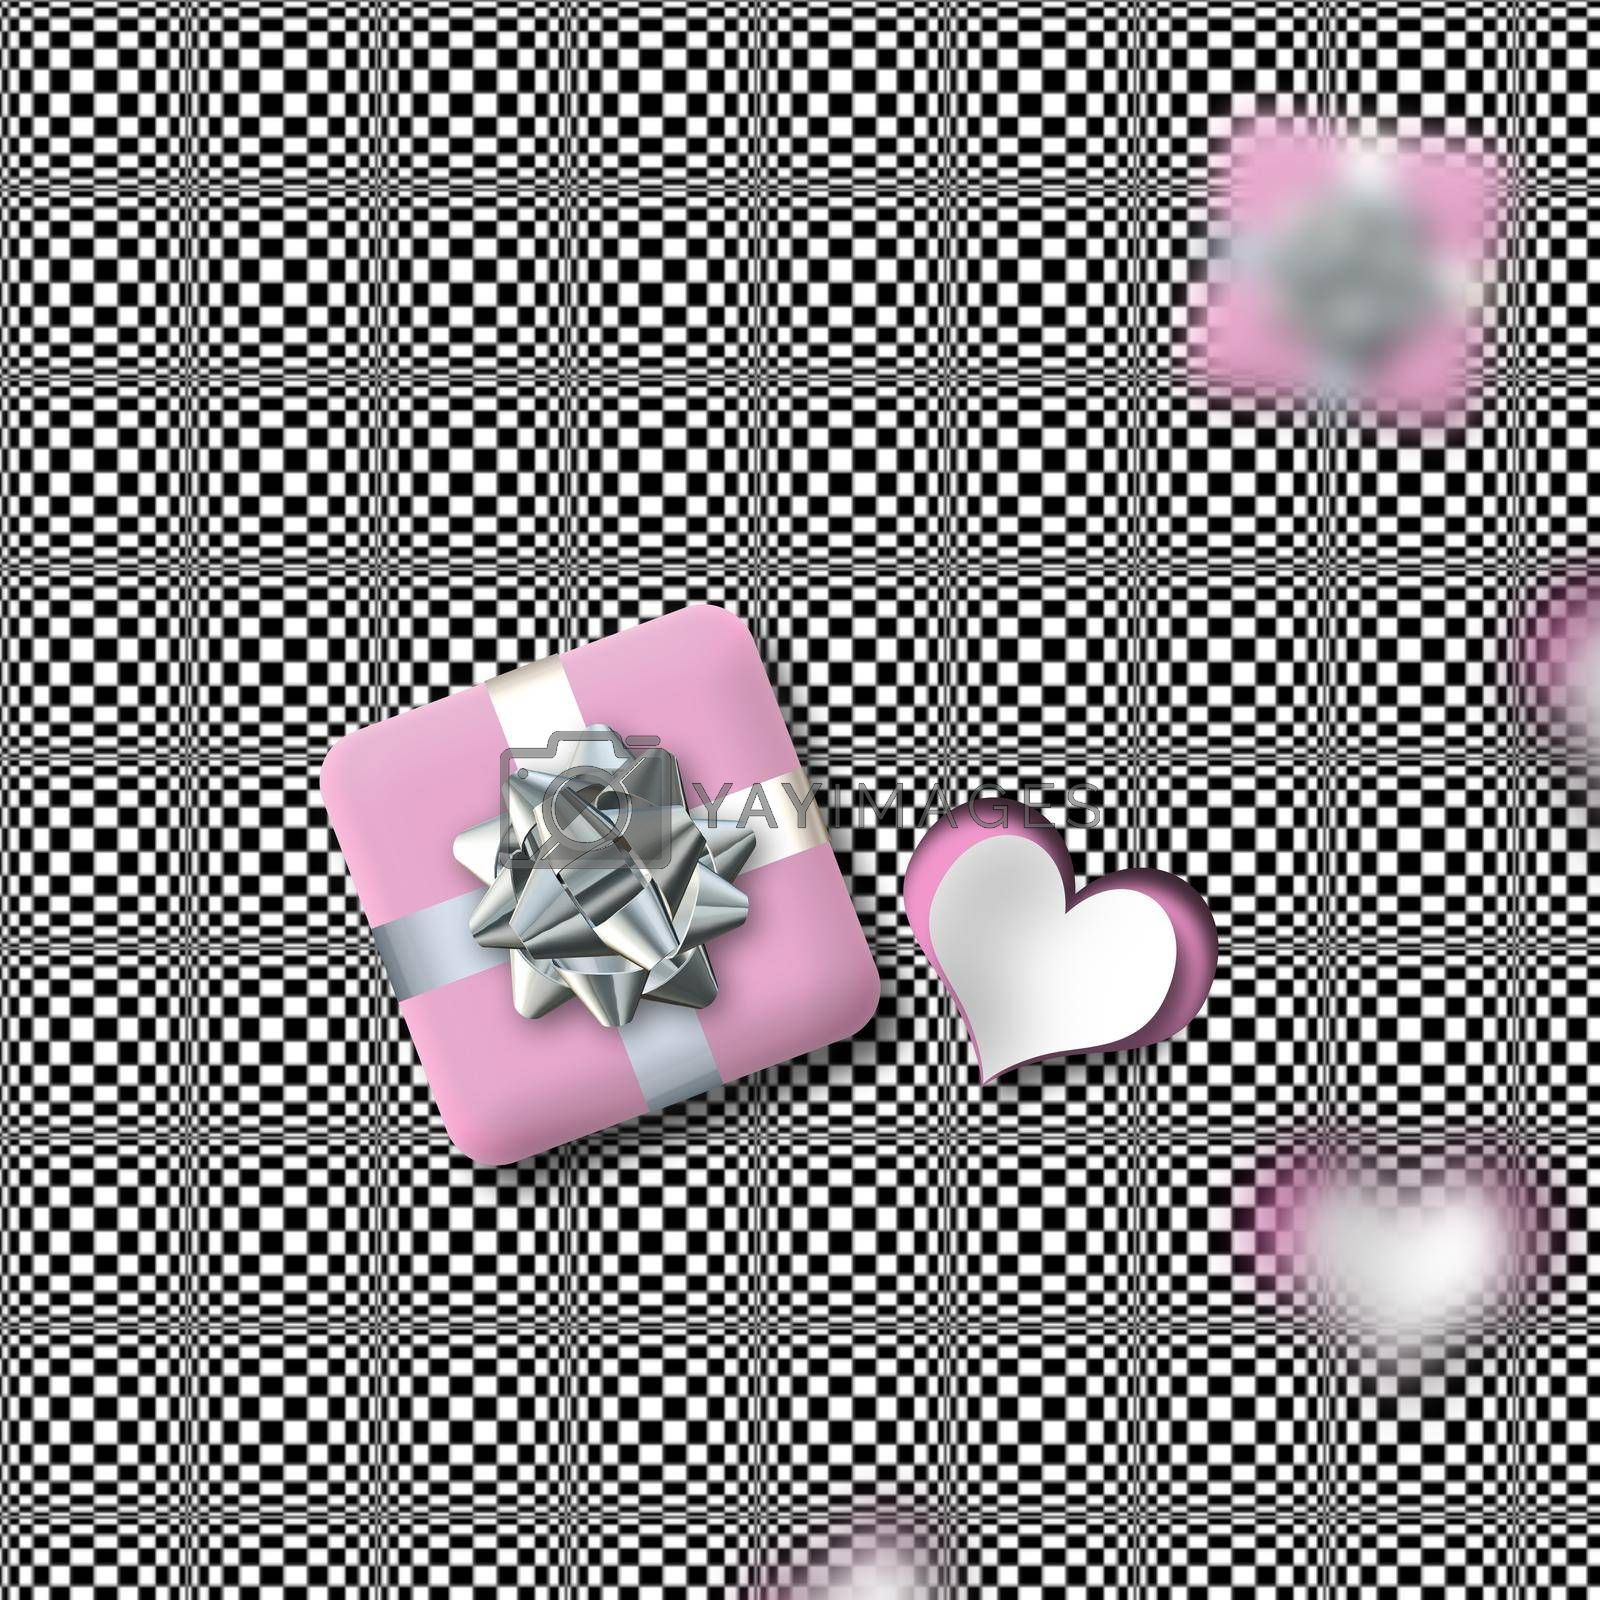 Modern Valentine's card with pink heart, gift box on grey abstract background. 3D illustration